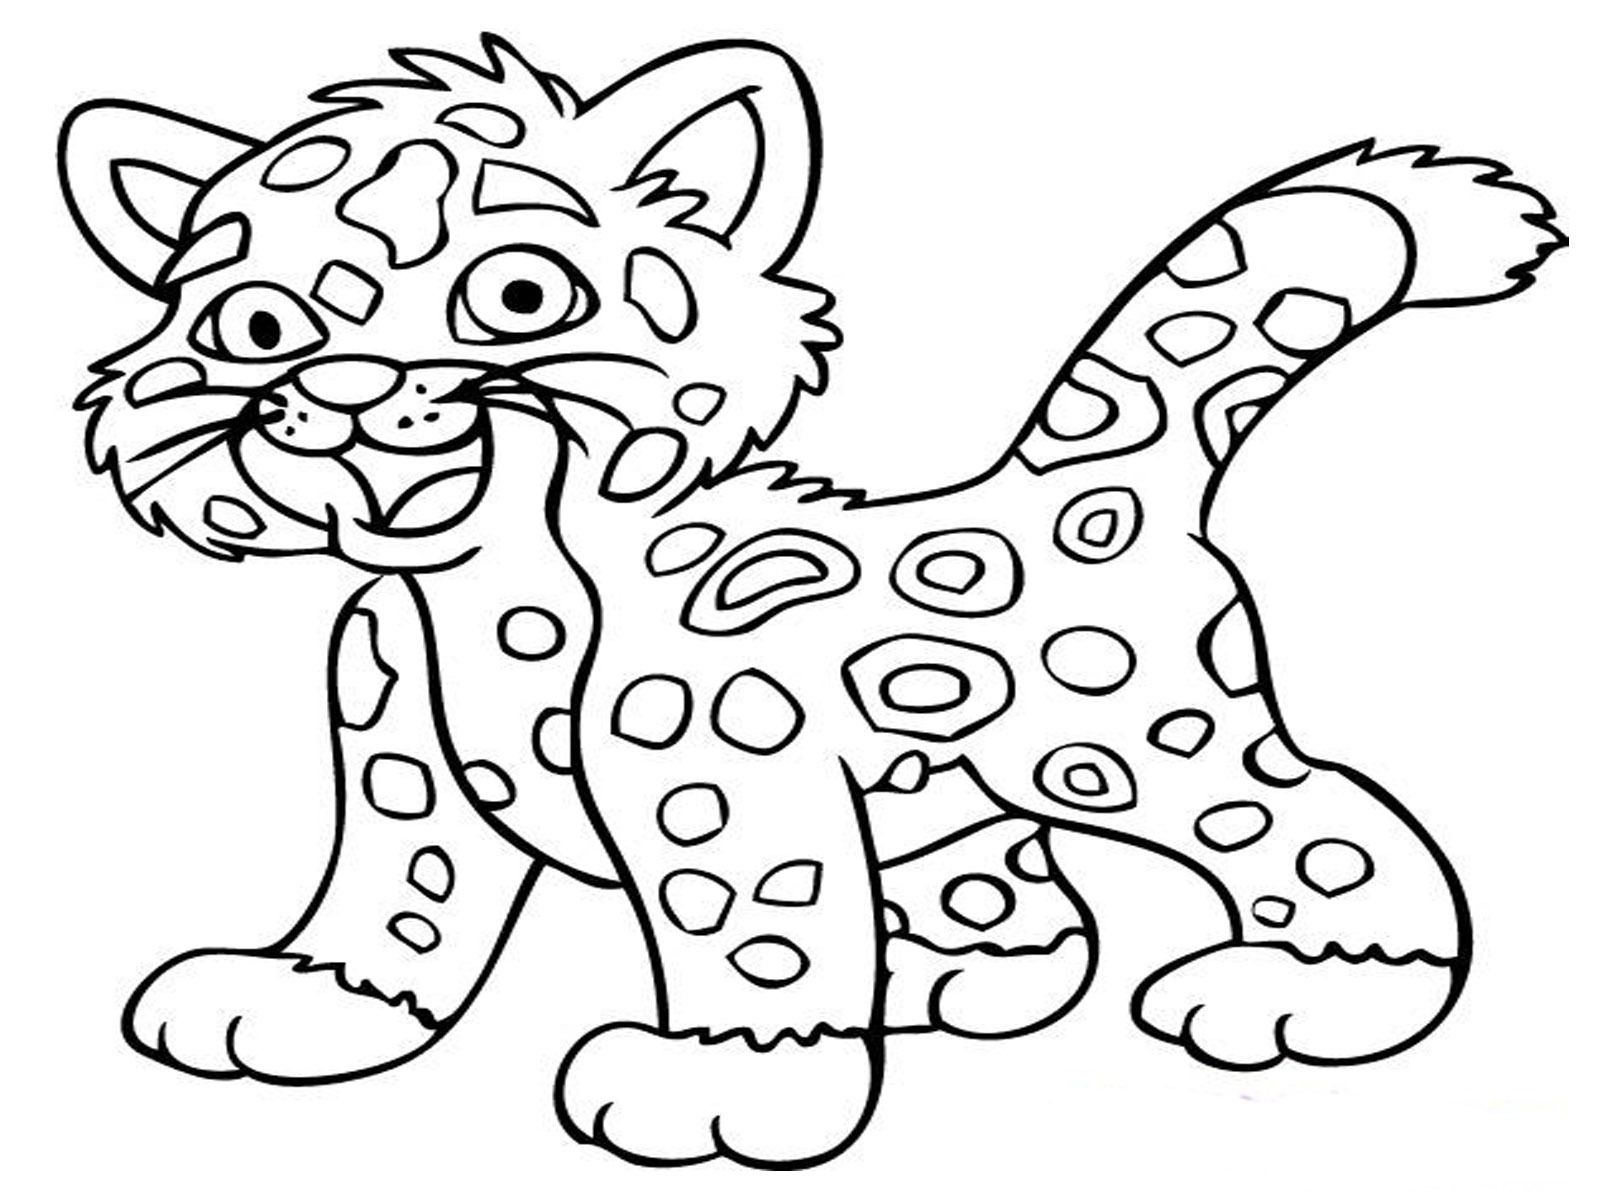 Free printable coloring pages hibernating animals - Coloring Pages To Print Animals High Quality Coloring Pages